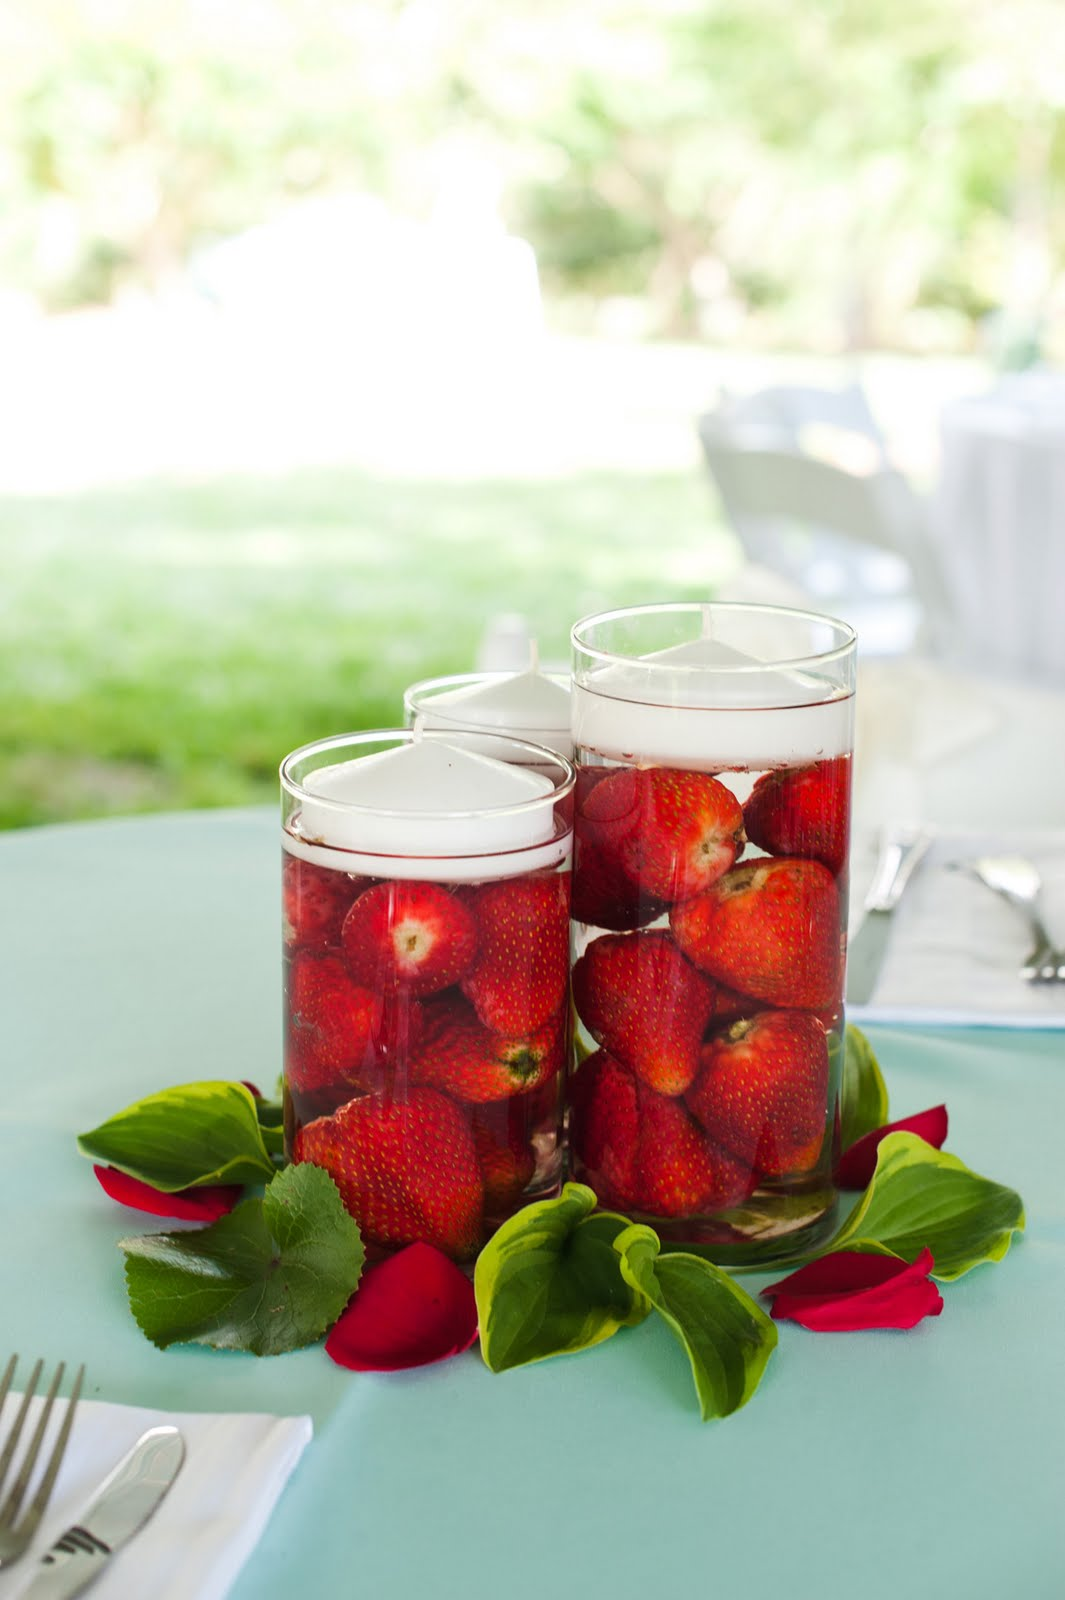 Strawberry centerpiece idea from Paint It Pretty